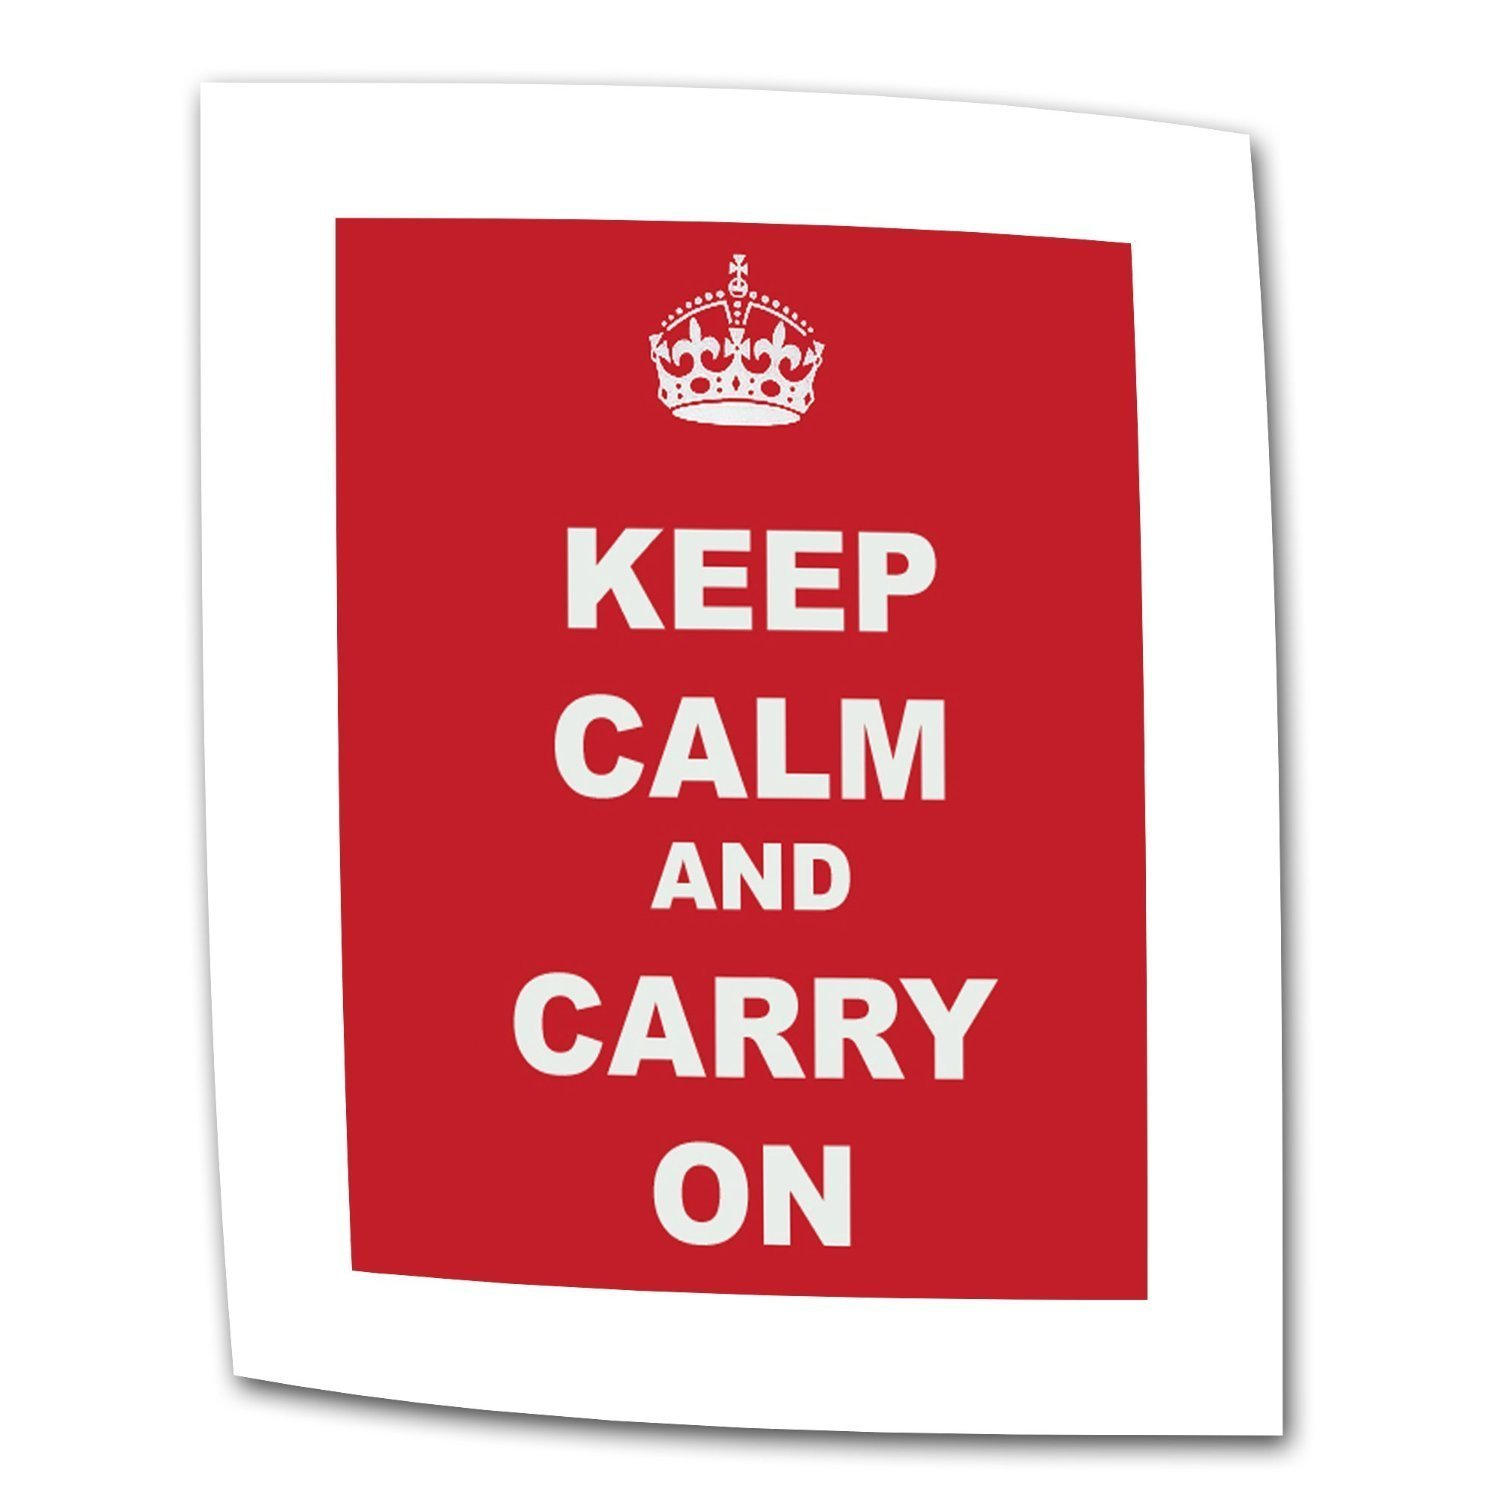 ArtWall Keep Calm and Carry on by The United Kingdom Rolled Canvas Art, 24 by 32-Inch